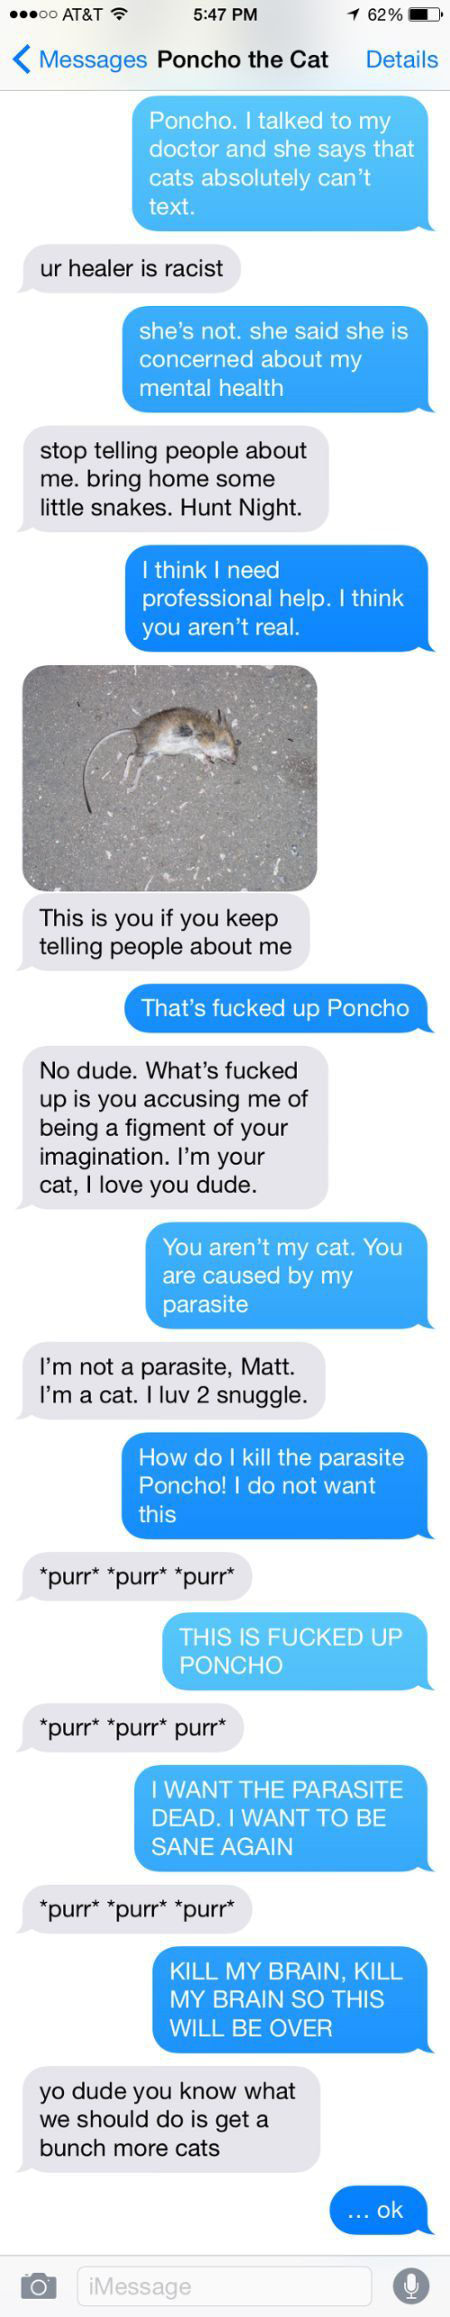 Man Tries To Prove He's Not Insane By Texting With His Cat